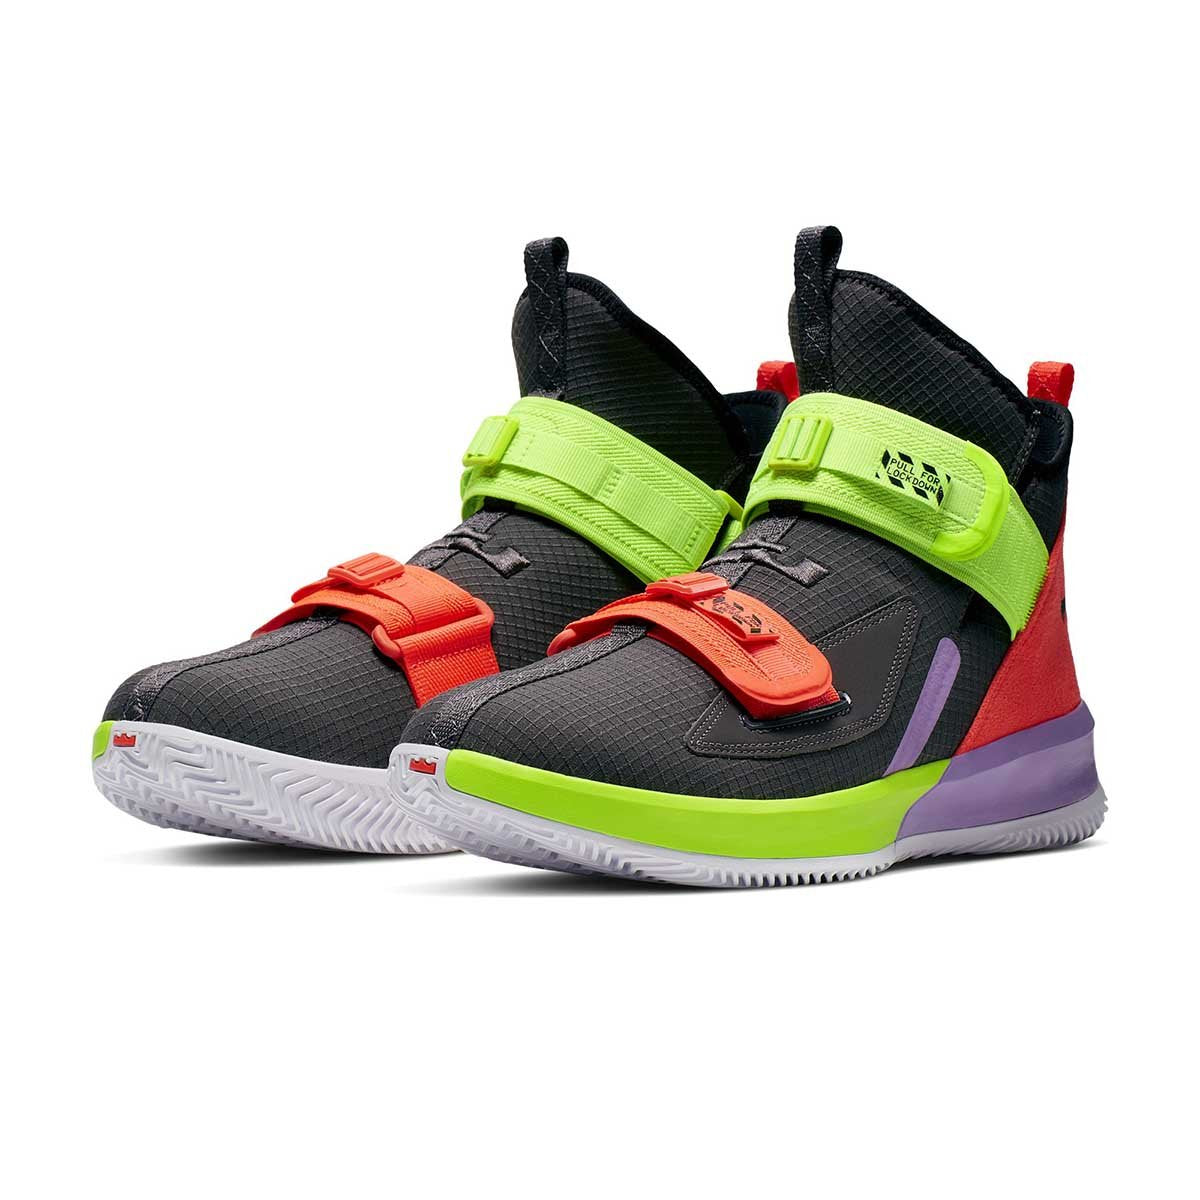 LeBron Soldier 13 SFG